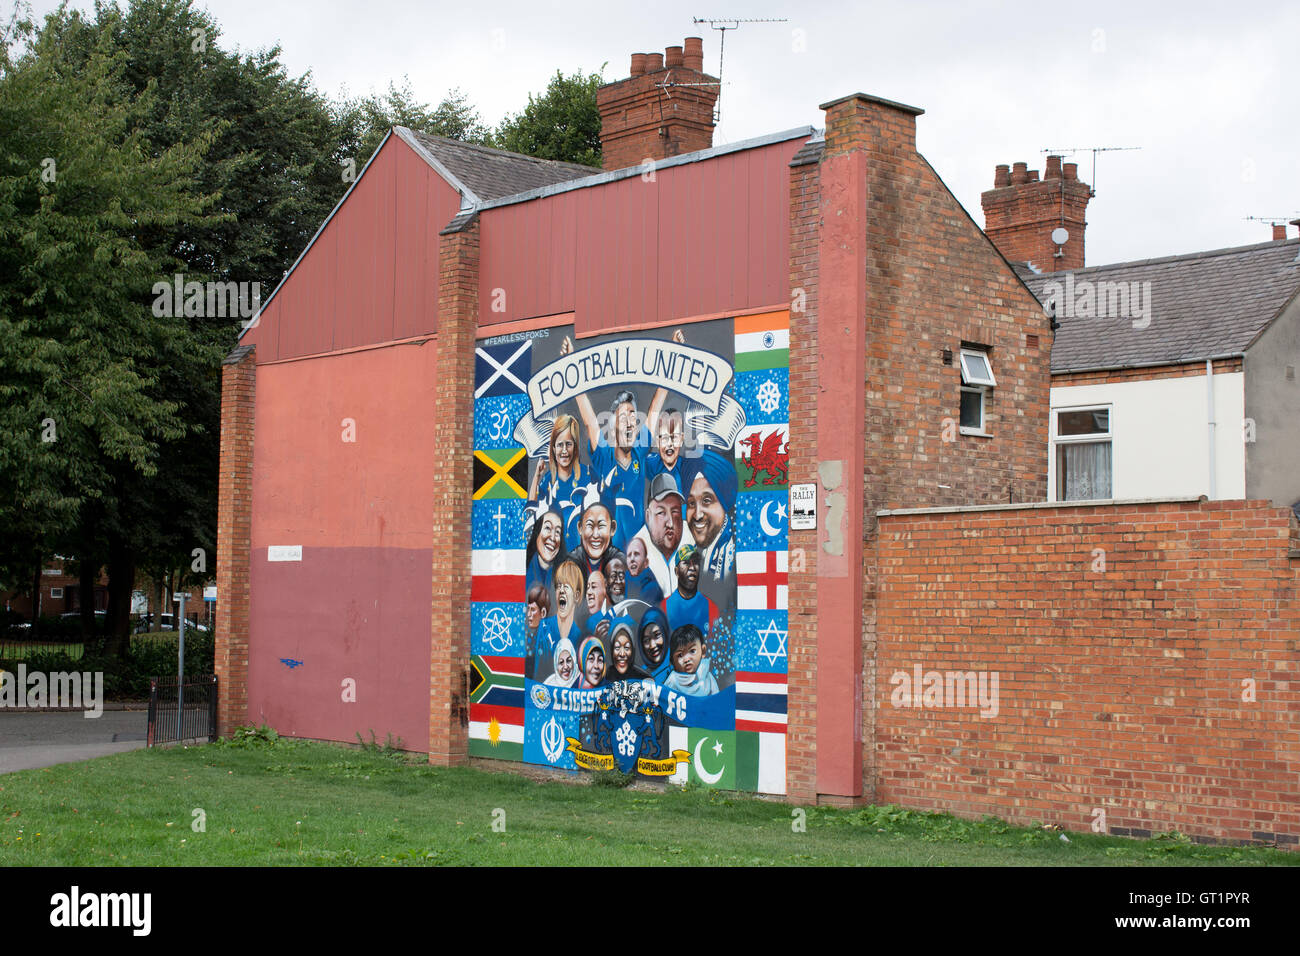 A mural painted on the side of a house in Tudor Road Leicester depicting world football - Stock Image